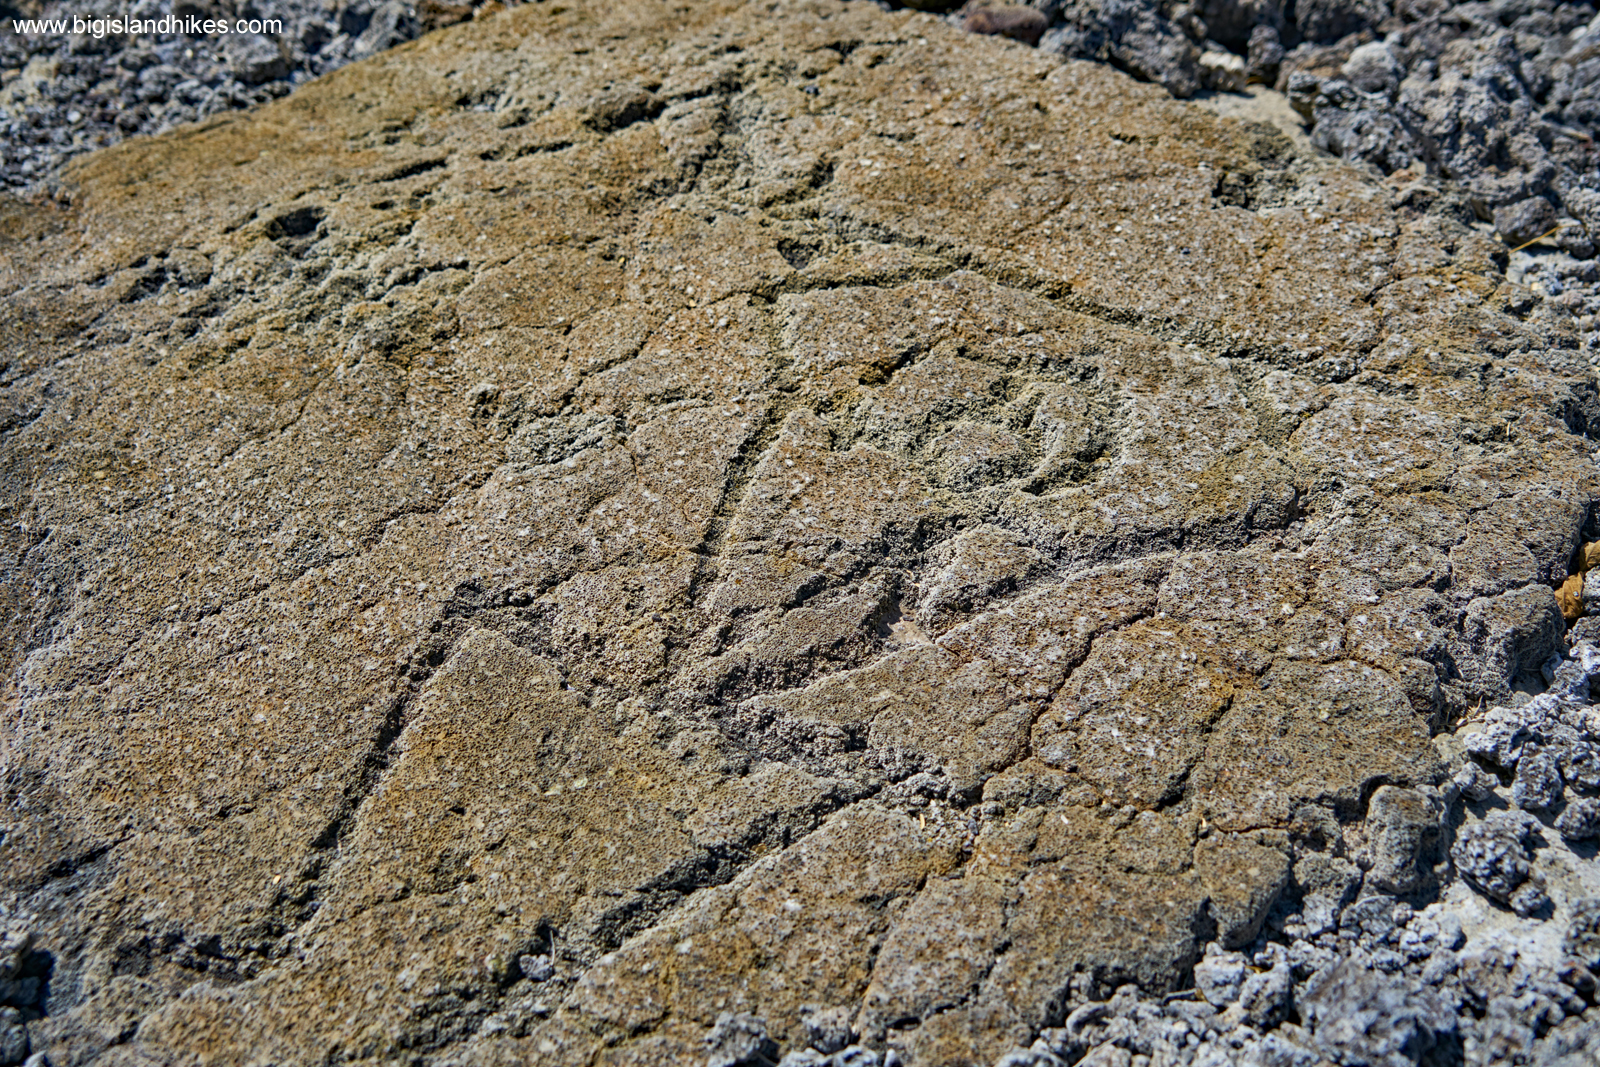 The Helmeted Warrior Petroglyph